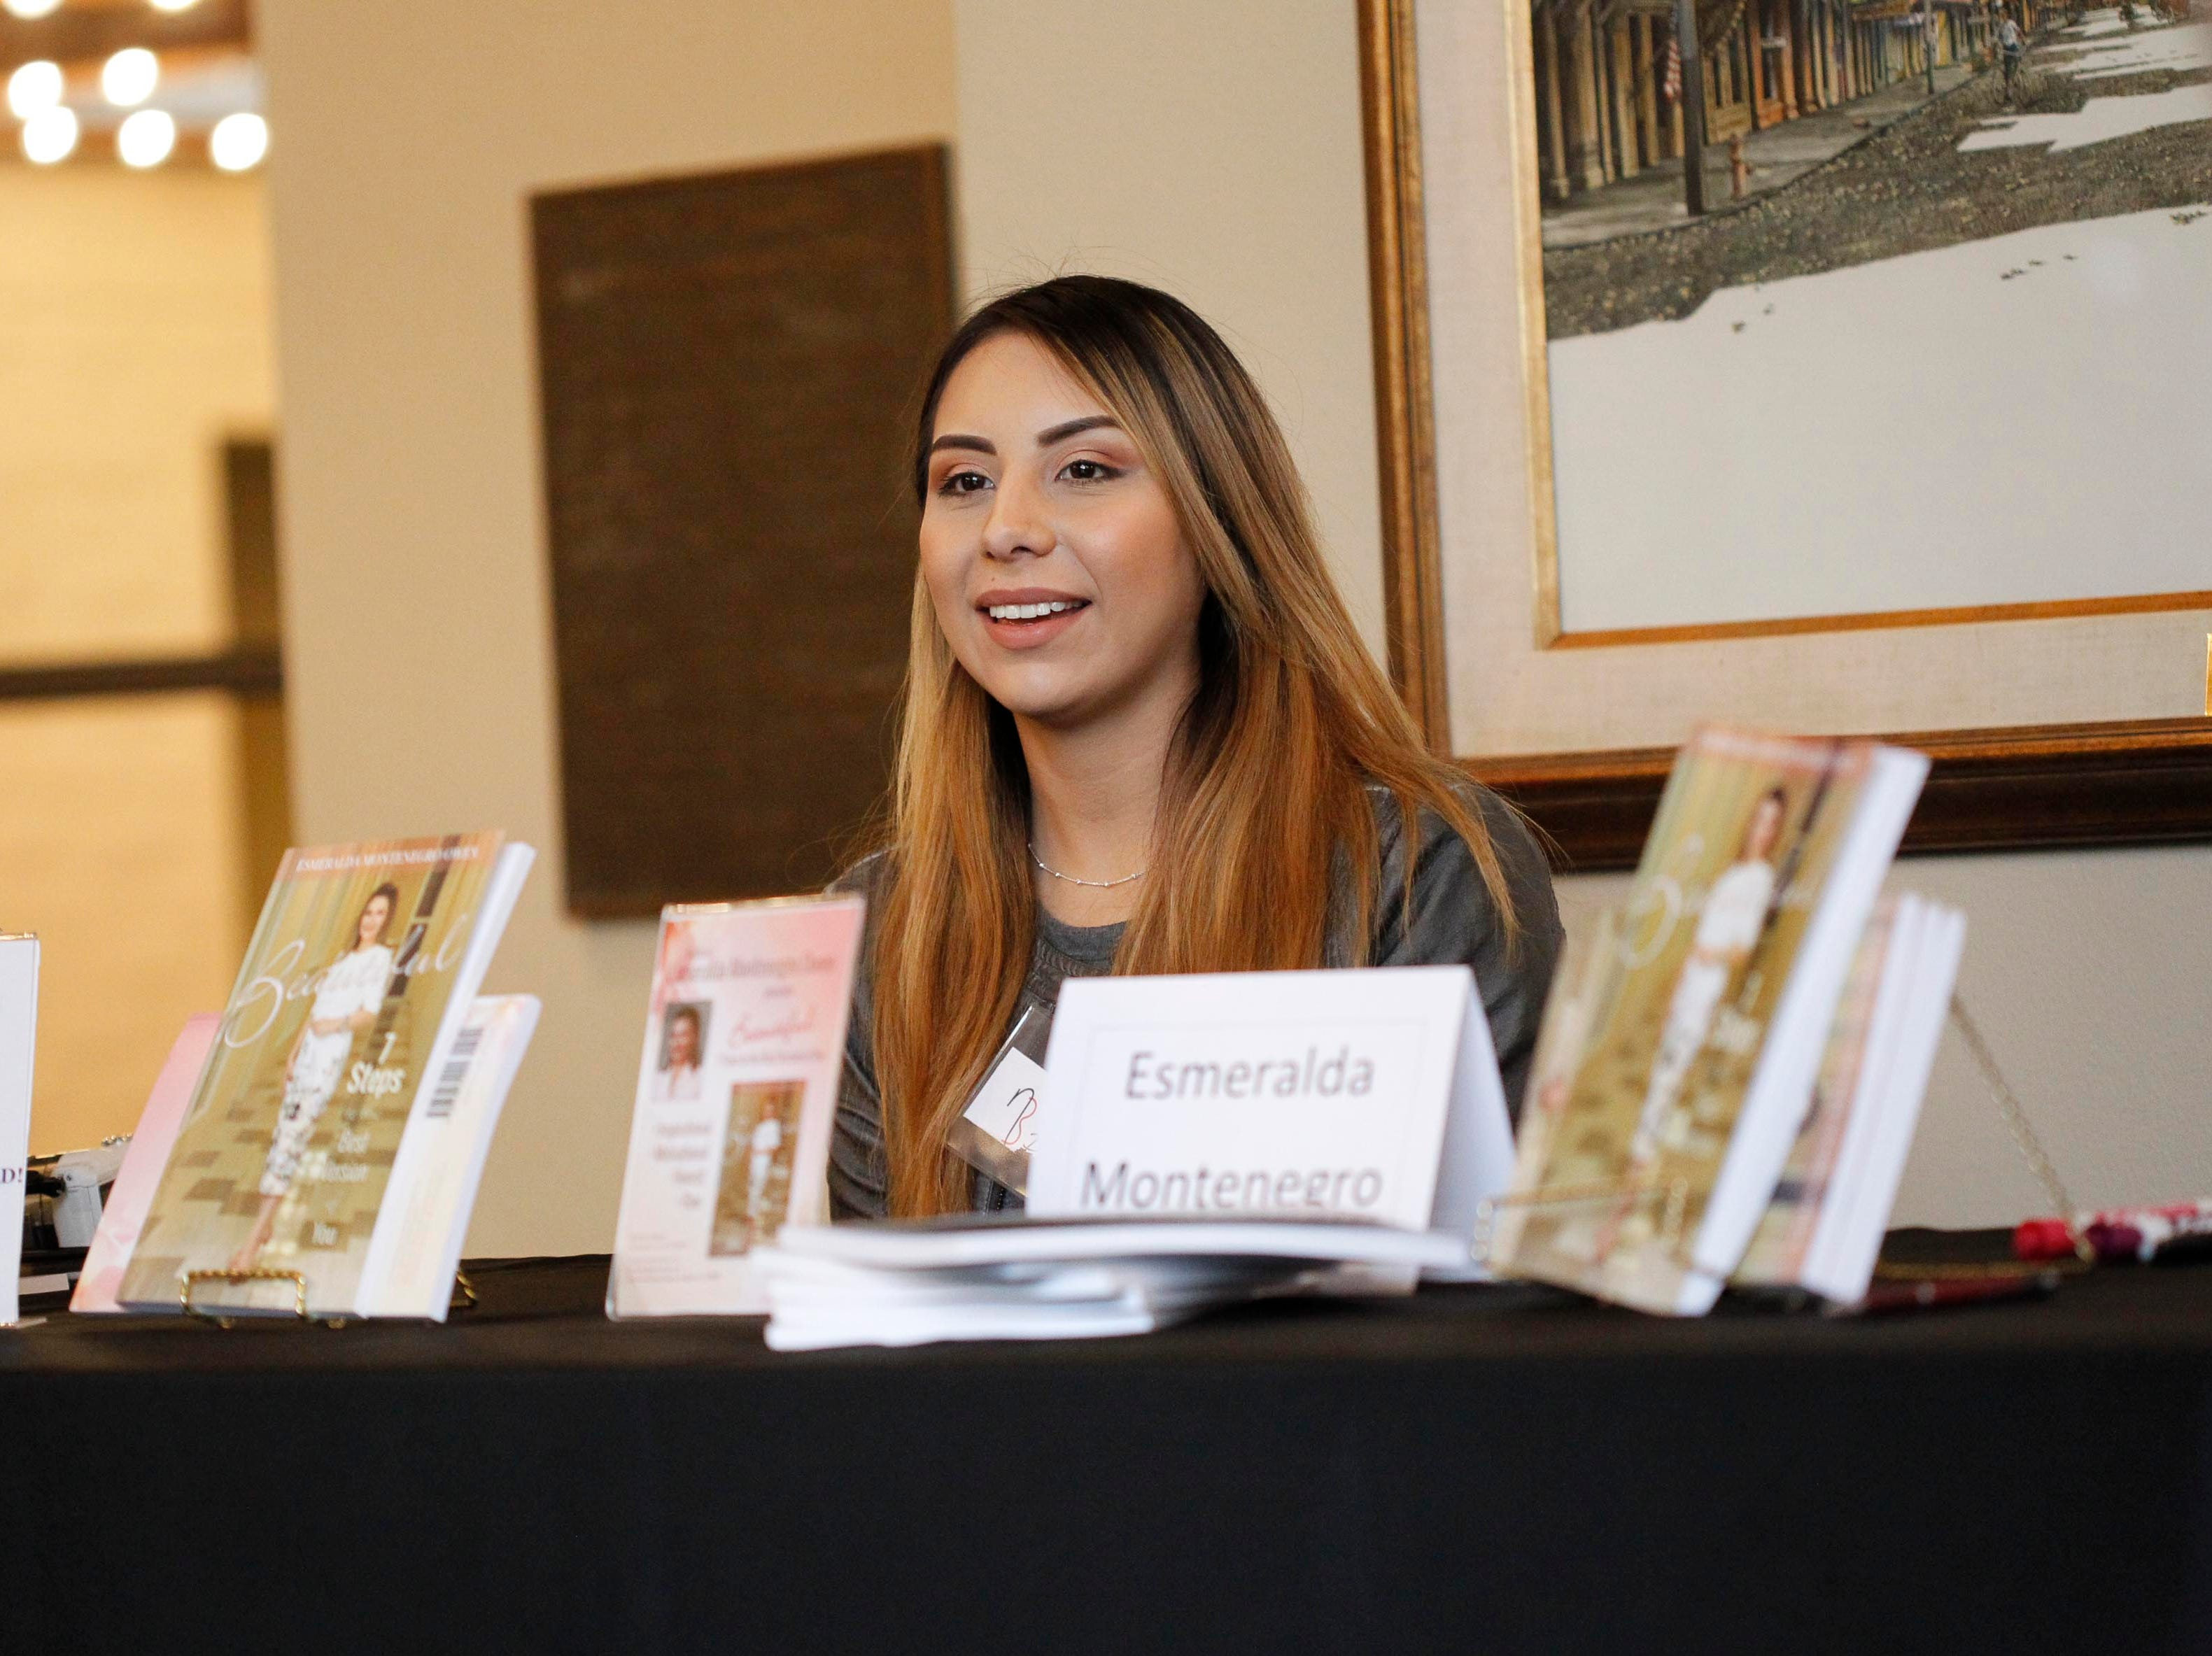 A woman sits at the booth of author Esmeralda Montenegro Owen of Salinas during the 12th annual Noche Bohemia at Sherwood Hall on Saturday, April 27, 2019 in Salinas, Calif.